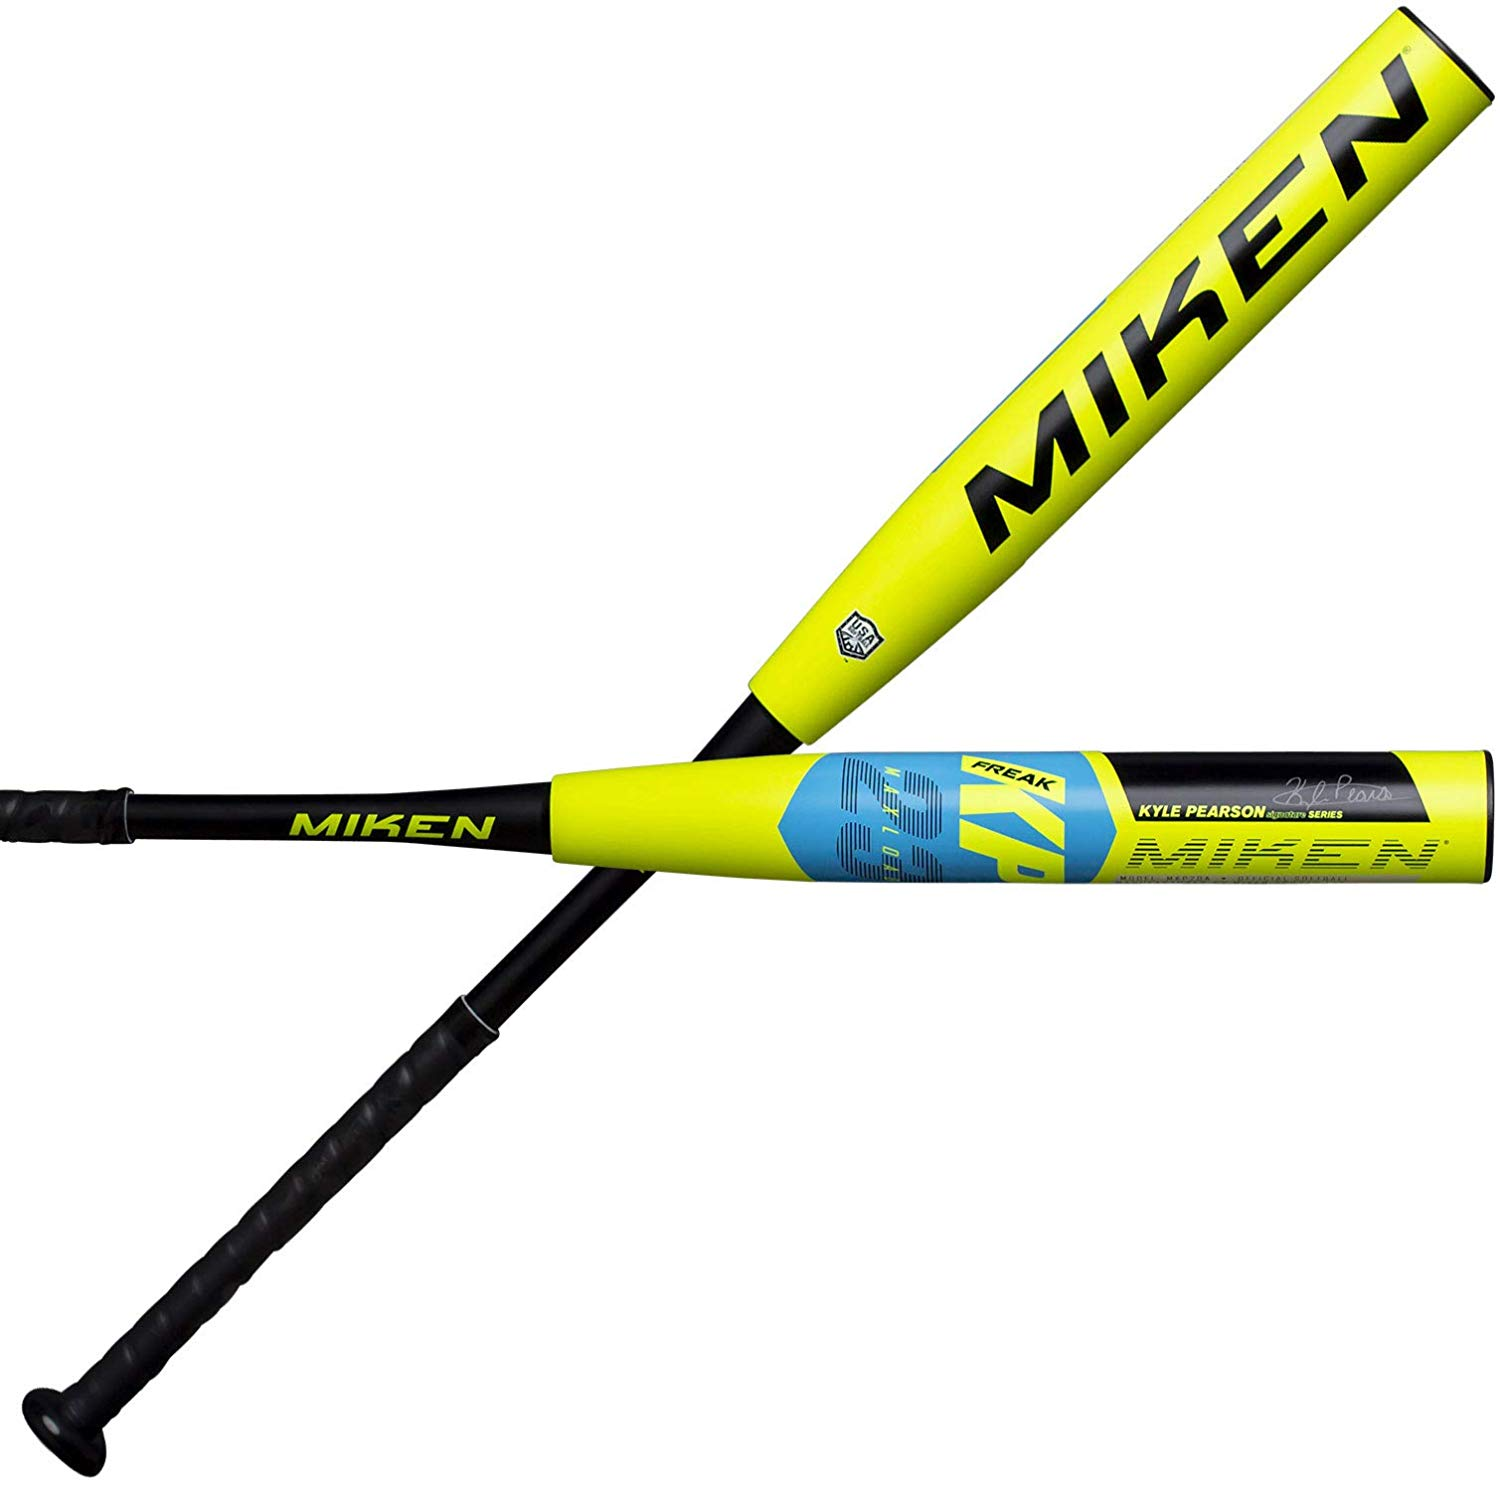 miken-2020-kyle-pearson-freak-23-maxload-asa-slow-pitch-softball-bat-34-inch-26-oz MKP20A-3-26 Miken 658925042935 DESIGNED FOR ADULTS PLAYING RECREATIONAL AND COMPETITIVE SLOWPITCH SOFTBALL this Miken